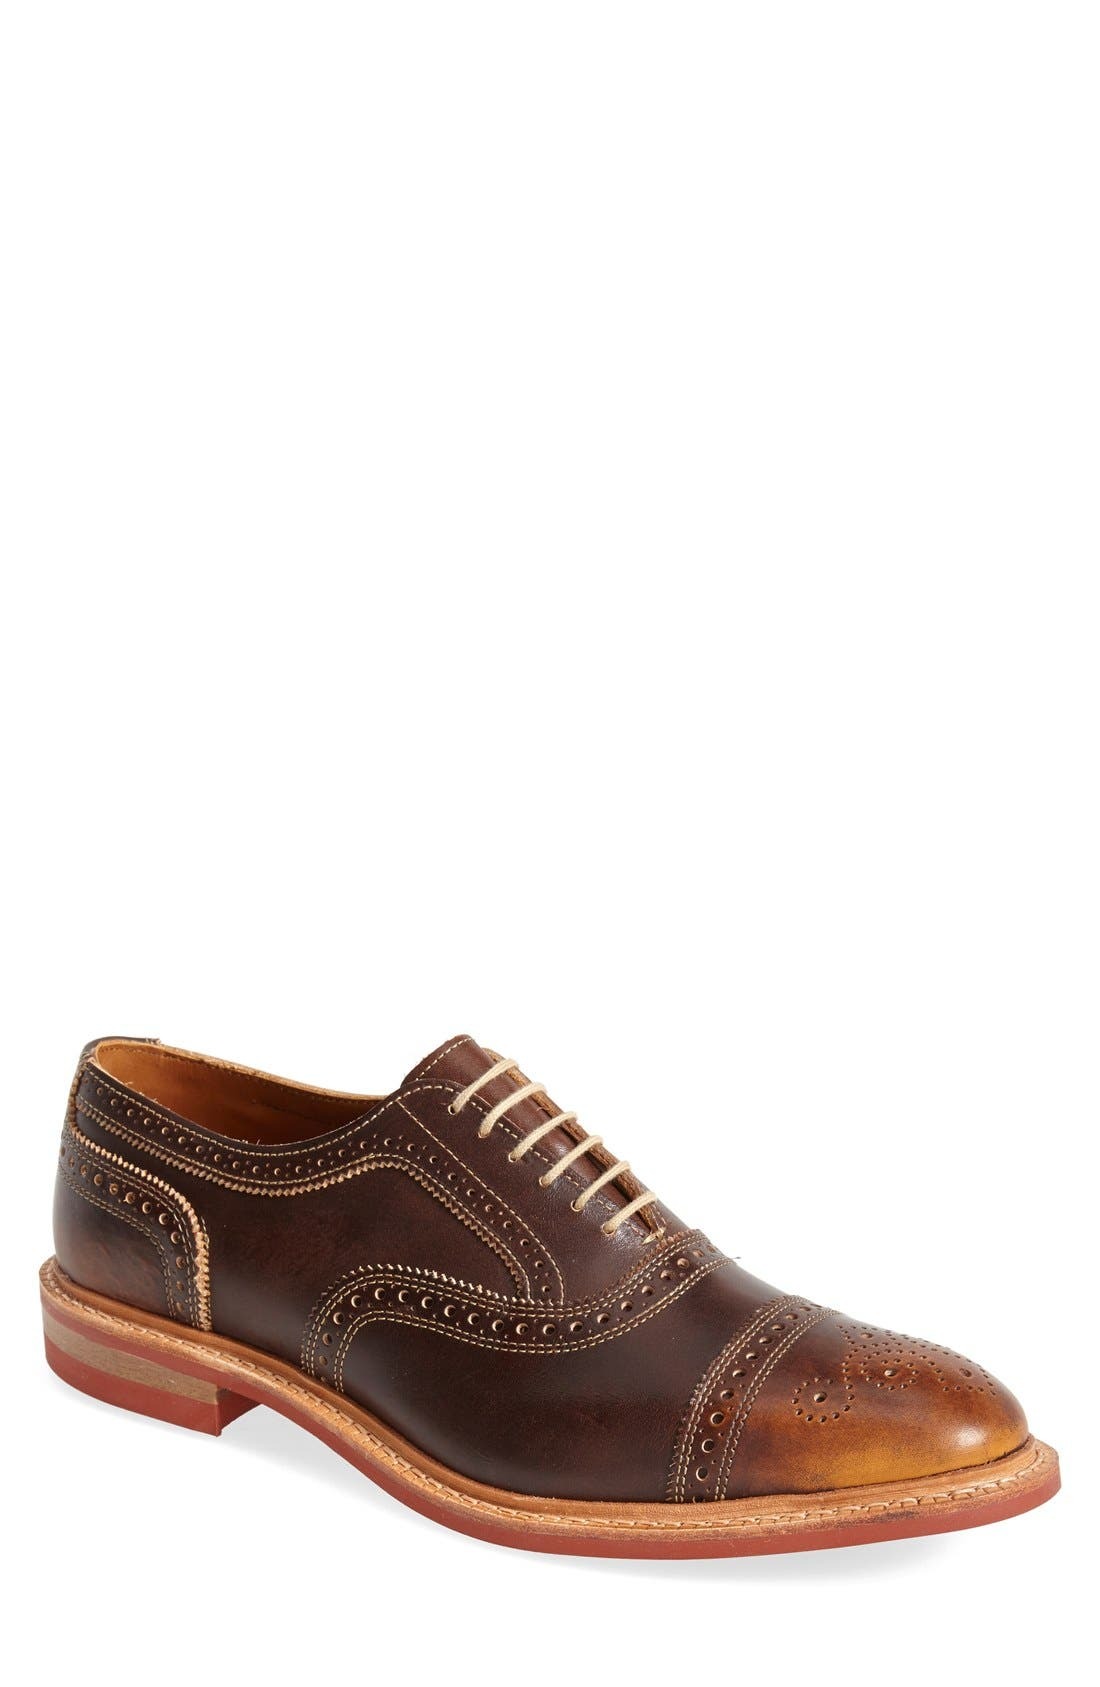 'Strandmok' Cap Toe Oxford,                             Main thumbnail 1, color,                             BROWN LEATHER